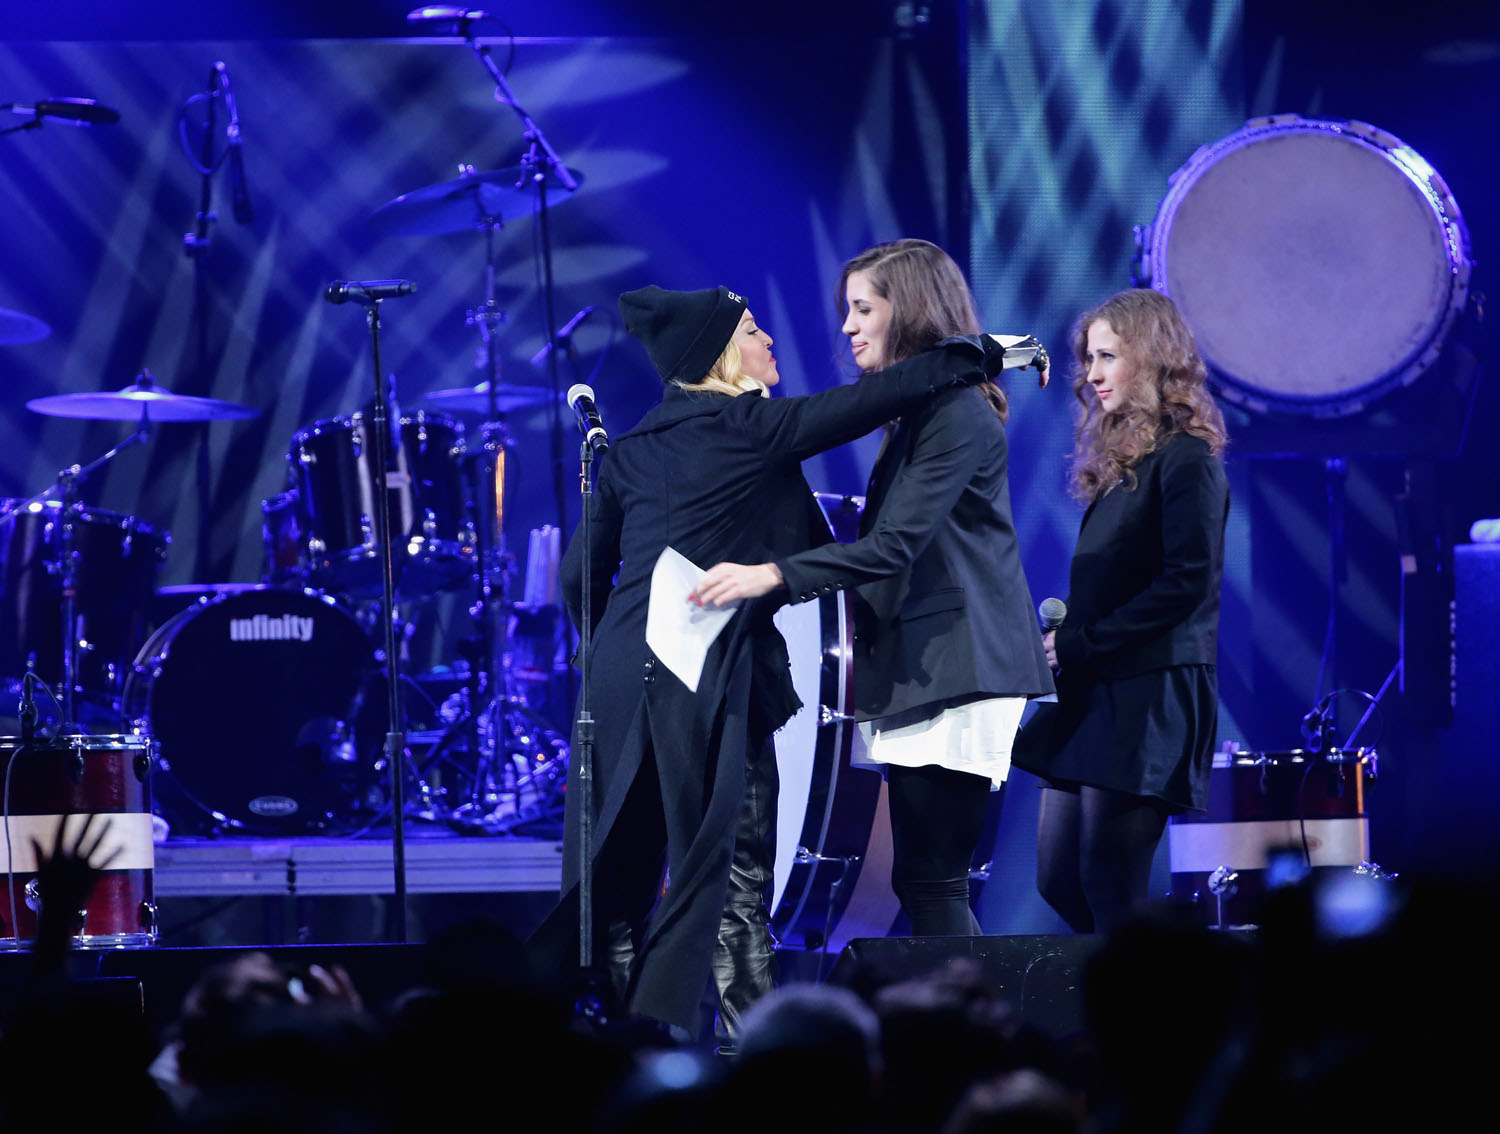 Madonna introduces Nadezhda Tolokonnikova, and Maria Alyokhina, formerly of Pussy Riot, onstage at the Amnesty International Concert presented by the CBGB Festival at Barclays Center on February 5, 2014 in New York City.